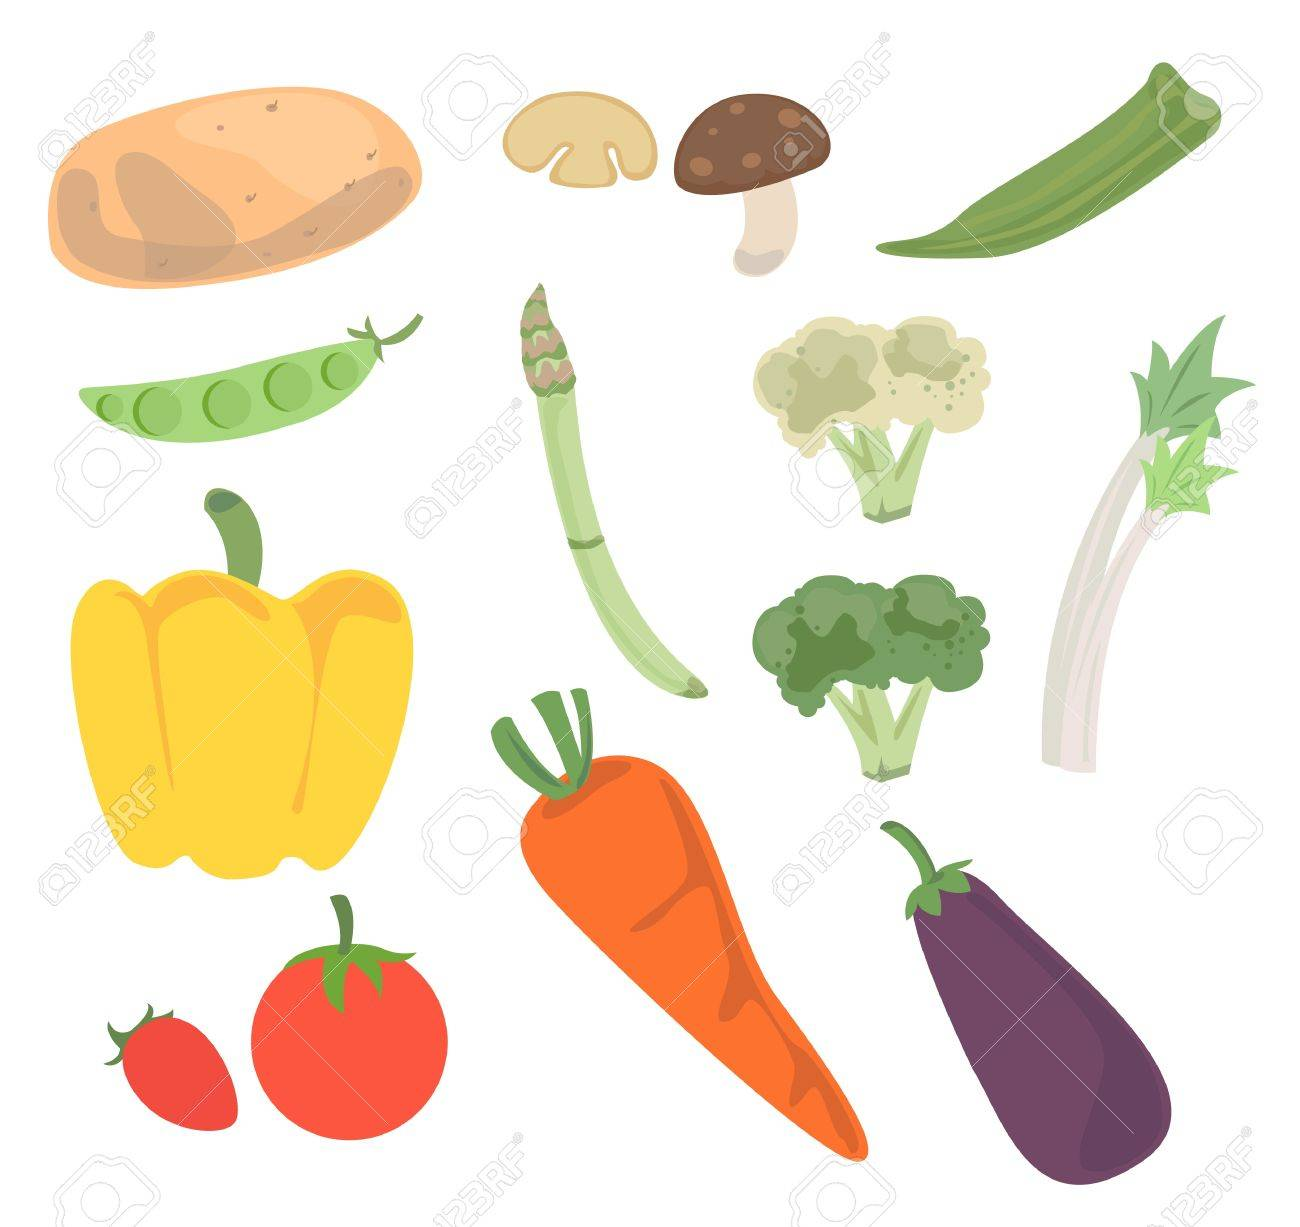 Fresh vegetables for cooking and good for health. - 21493451